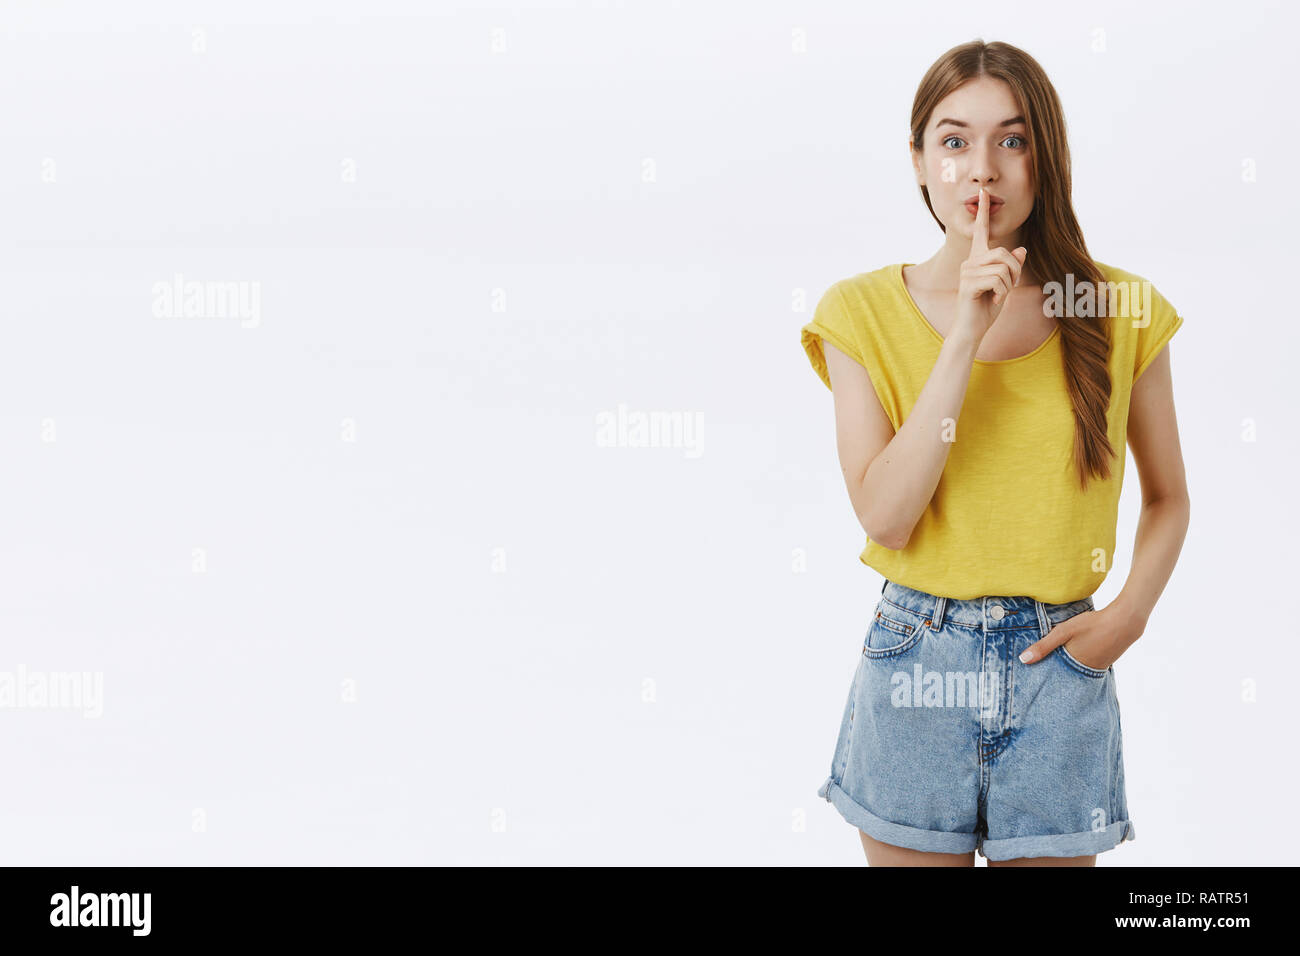 Shh please keep secret. Charming enthusiastic adult pretty woman with cute hairstyle folding lips gazing excited at camera showing shush gesture with index finger over mouth making surprise - Stock Image